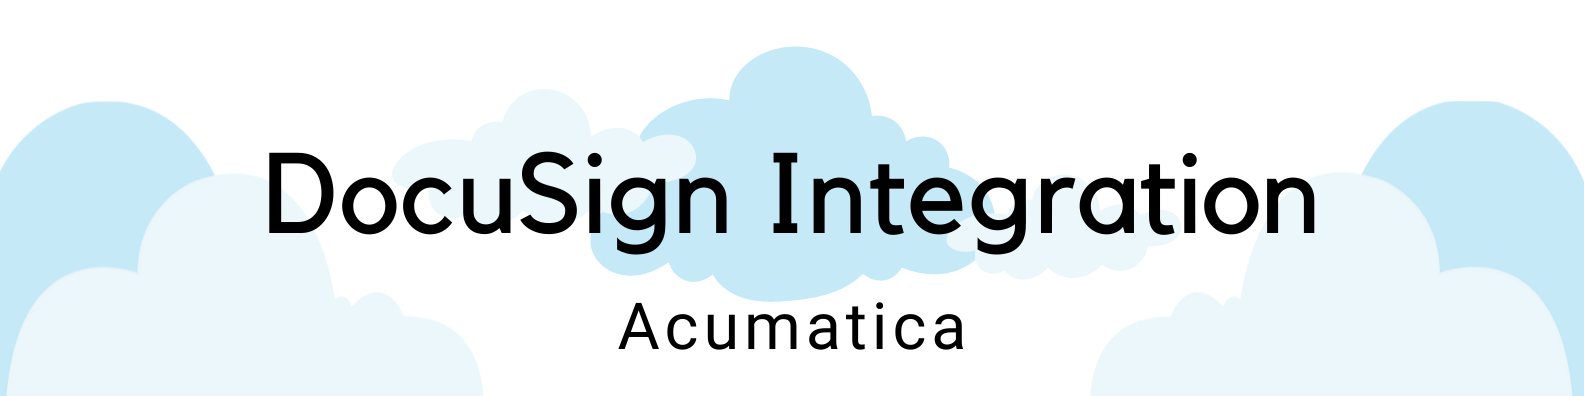 ICAN Clouds Header DocuSign